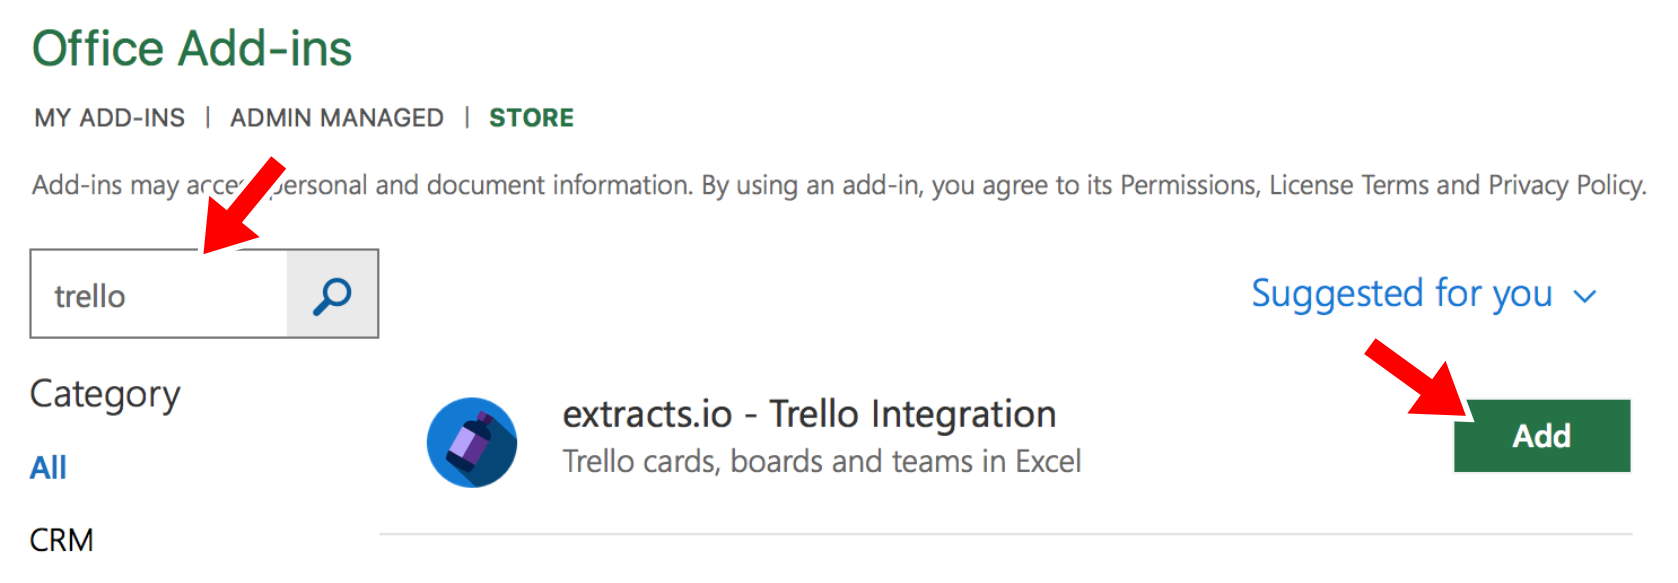 Search for trello and click add